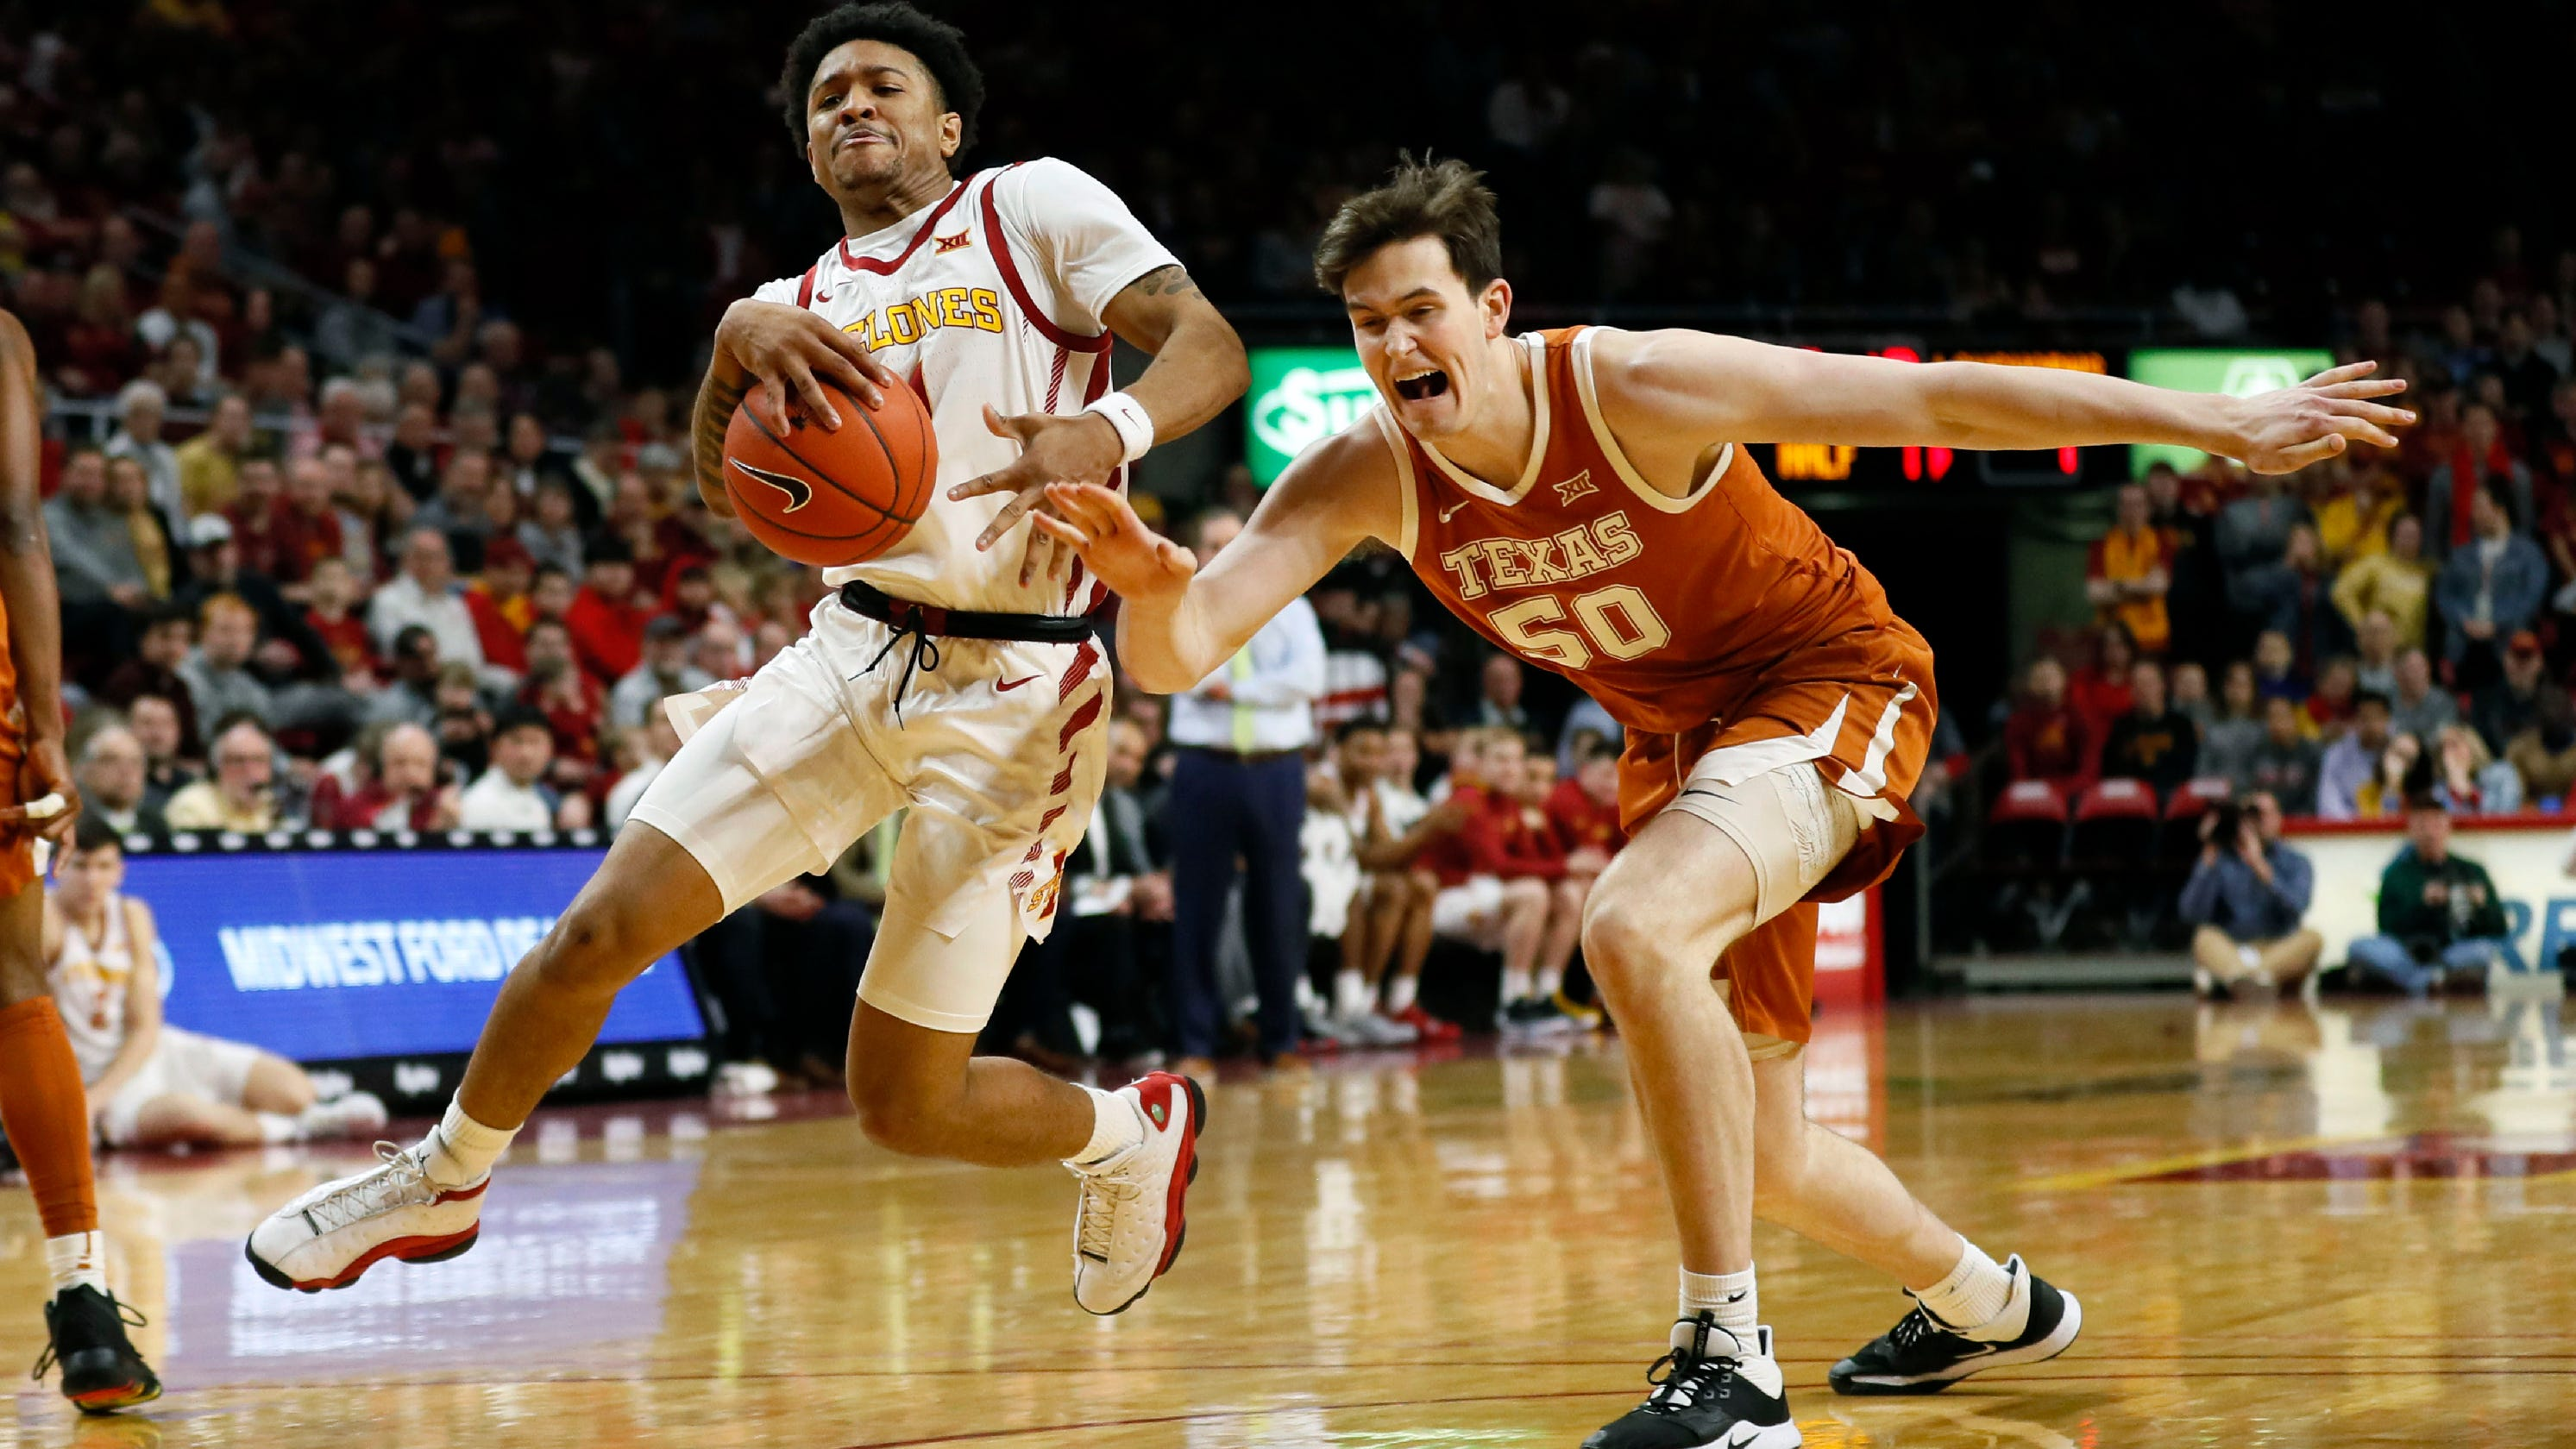 Peterson: Iowa State has confidence after 29-point crushing of Texas at Hilton Coliseum